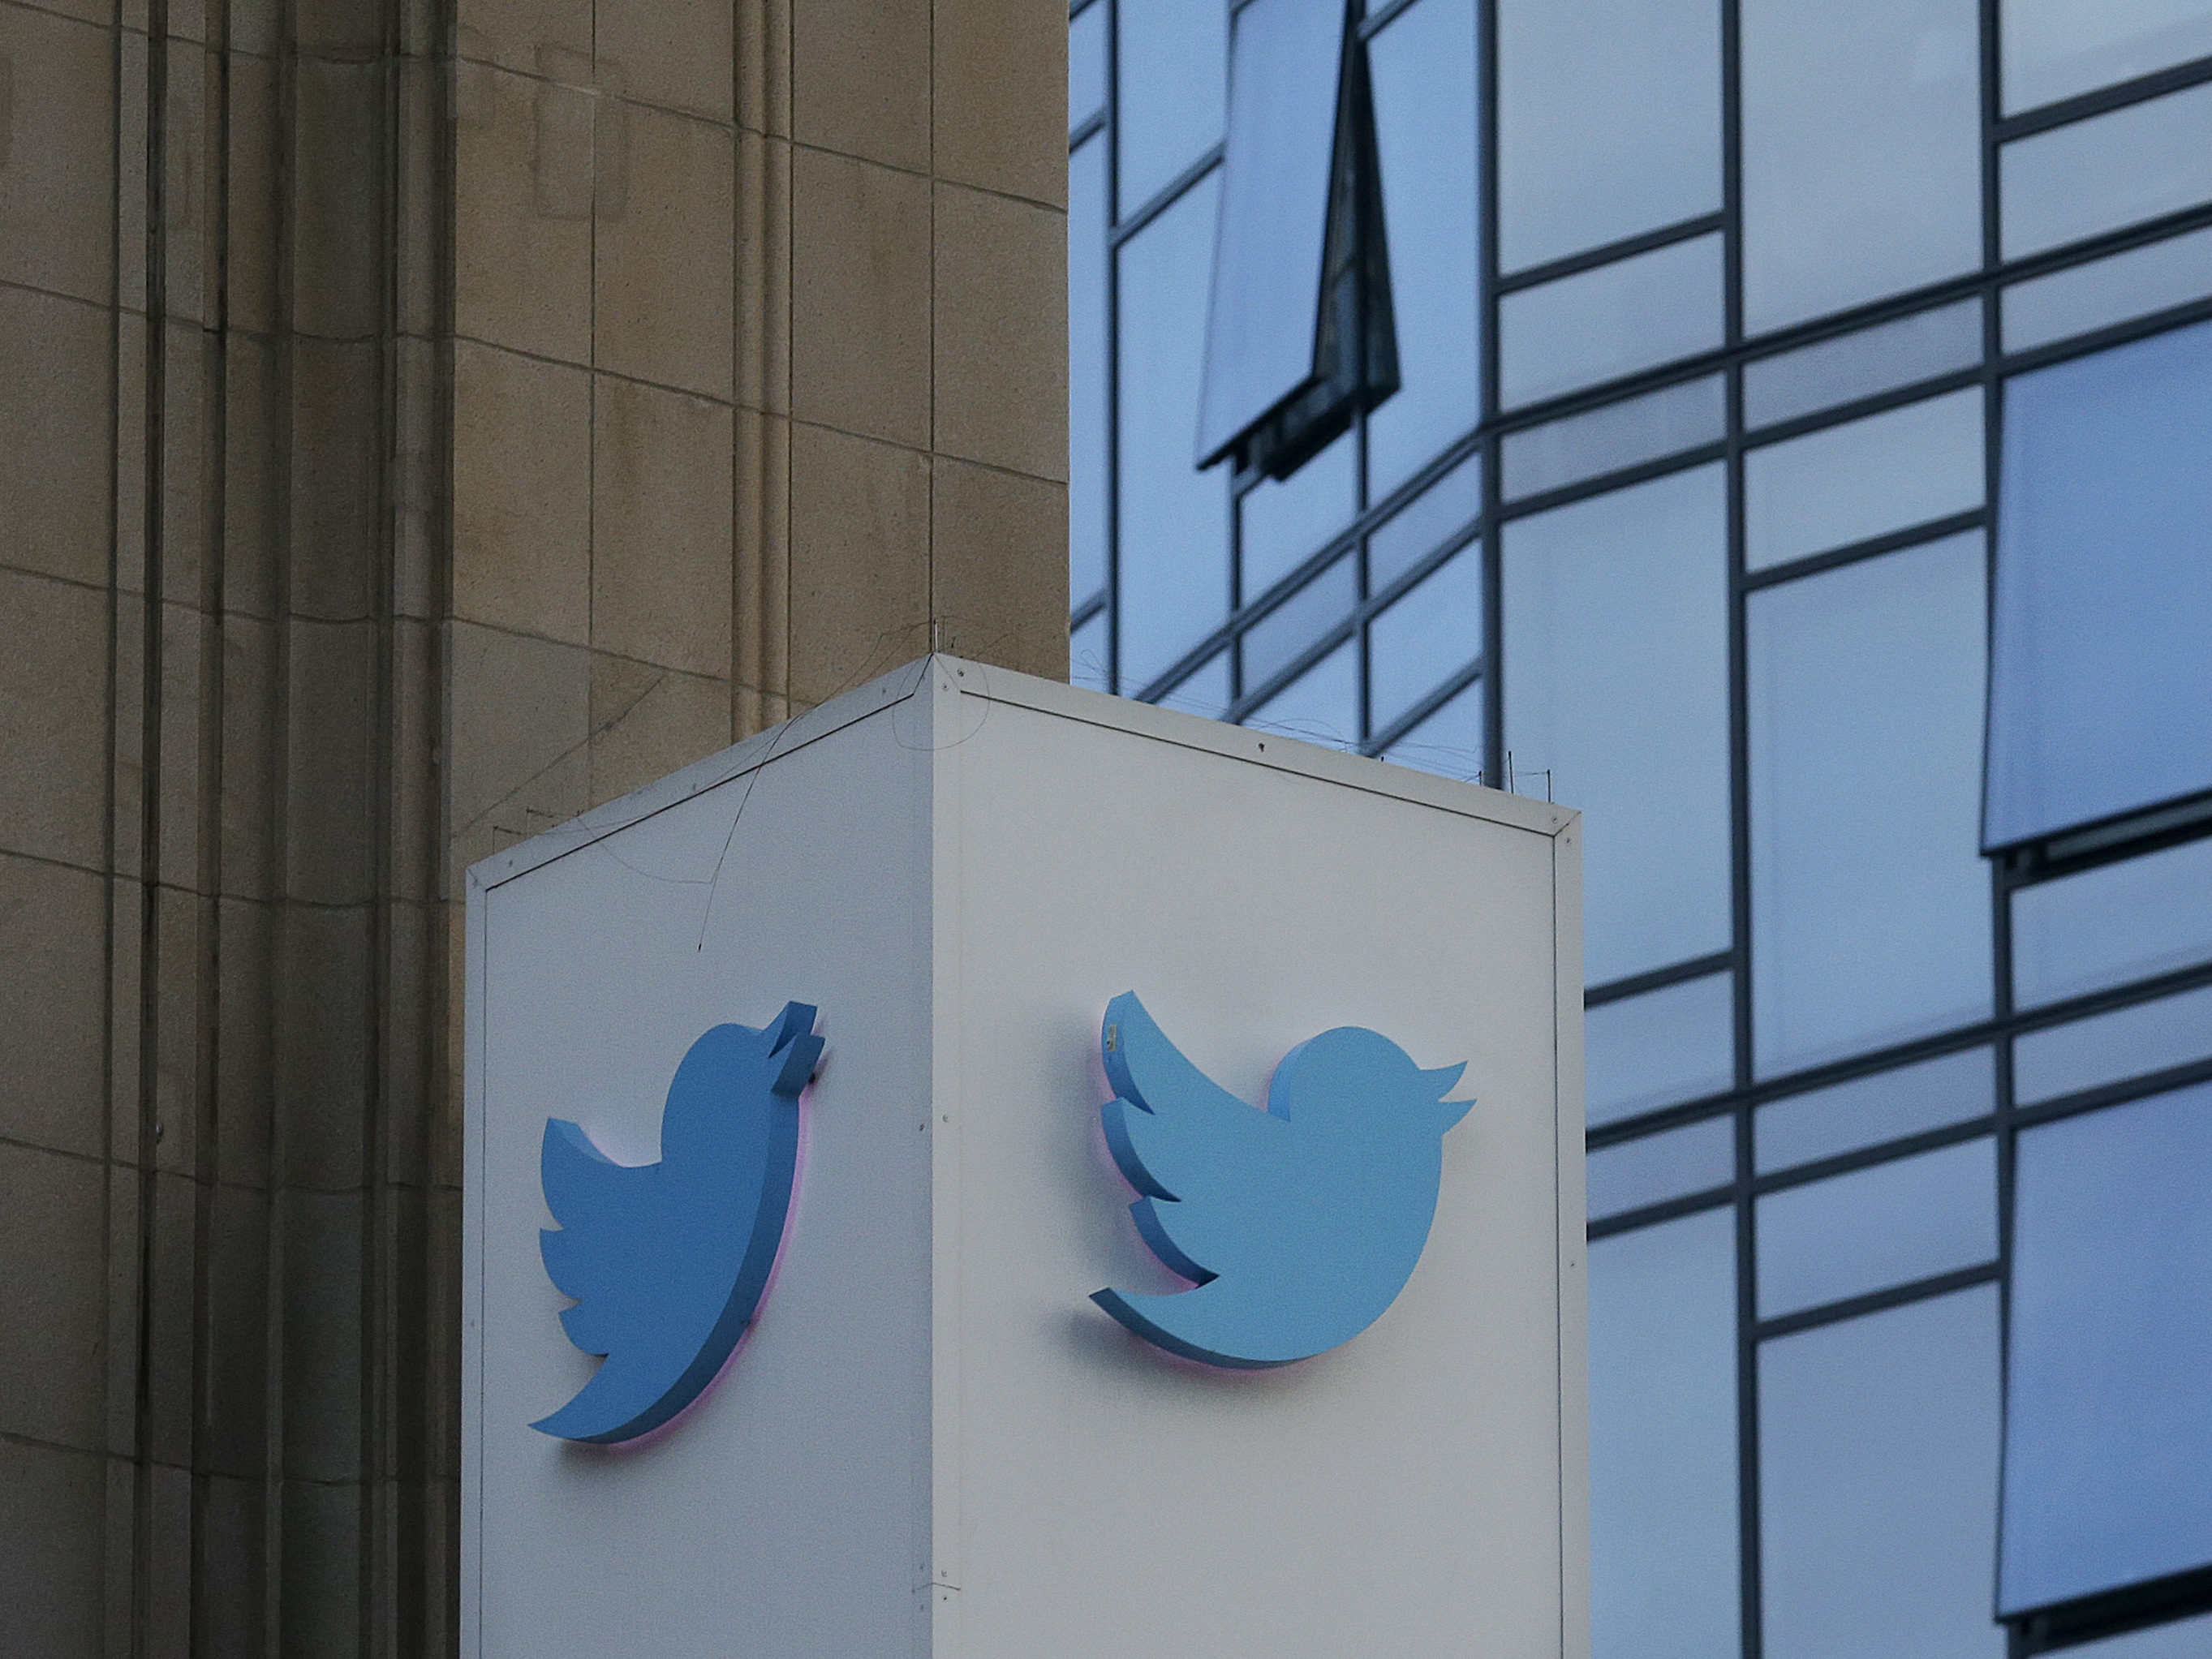 Abuse and offensive posts on Twitter increased during the acrimonious presidential campaign this year.